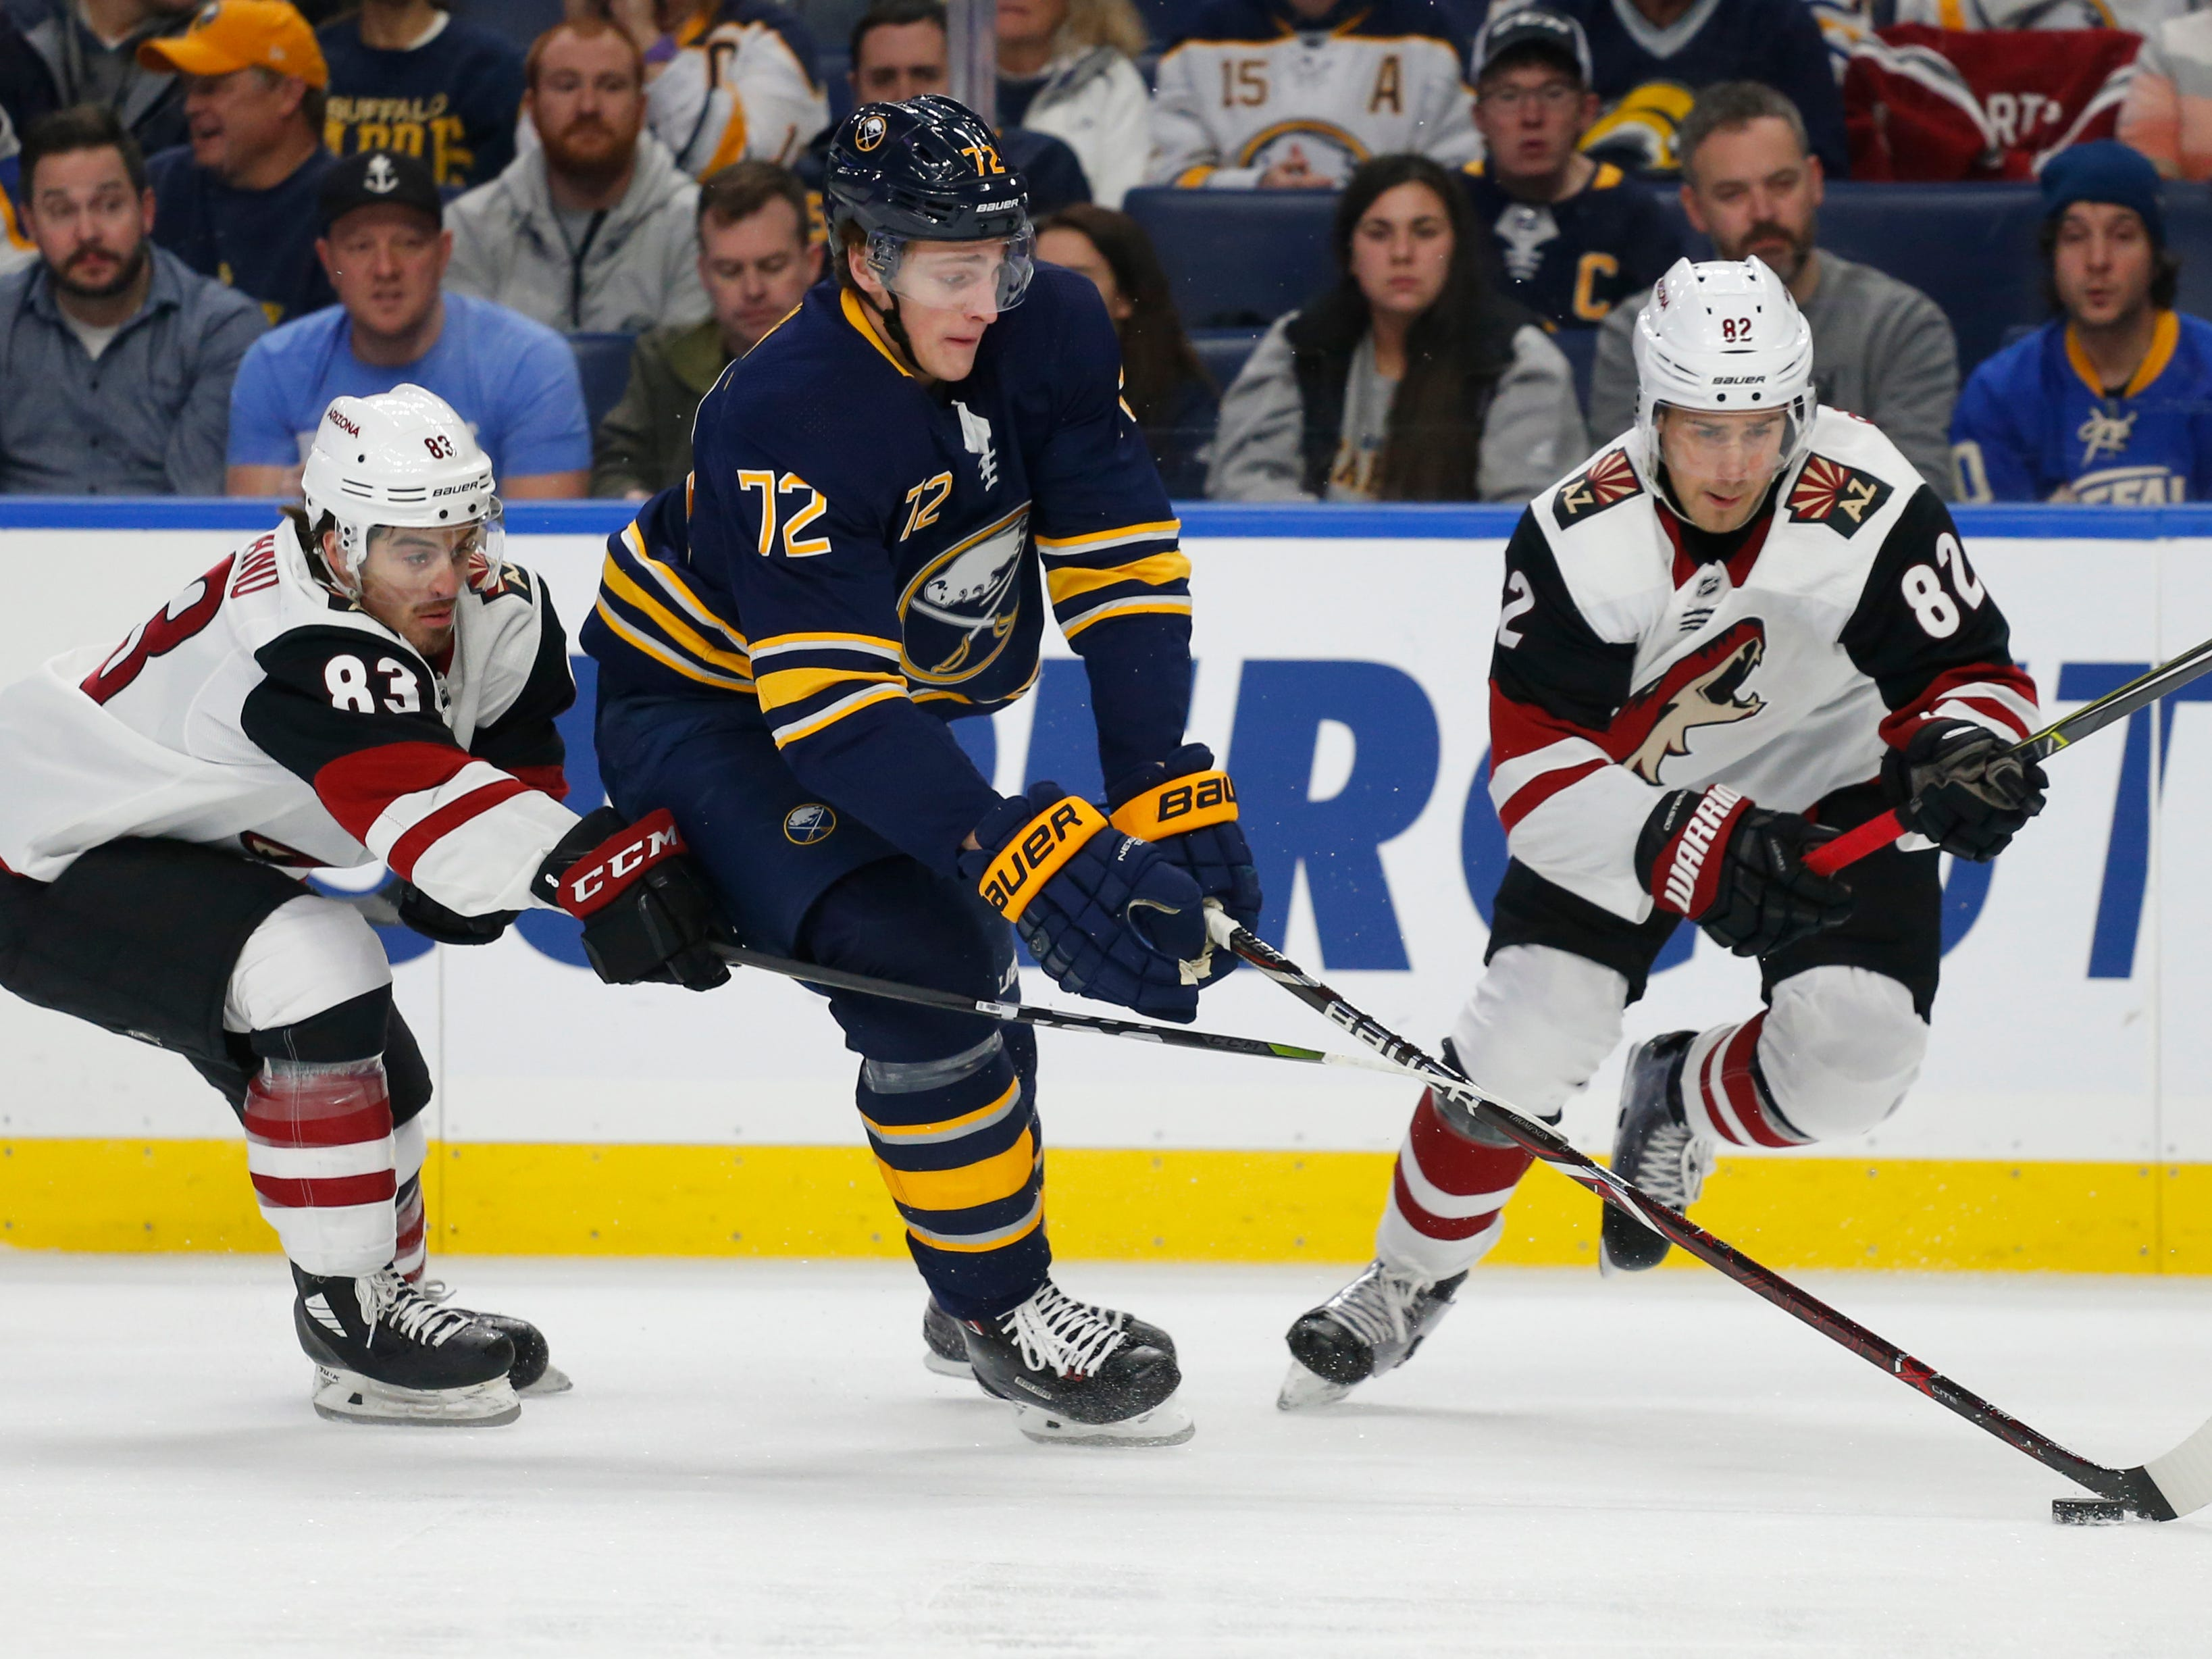 Buffalo Sabres forward Tage Thompson (72) carries the puck between Arizona Coyotes Conor Garland (83) and Jordan Oesterle (82) during the first period of an NHL hockey game, Thursday, Dec. 13, 2018, in Buffalo N.Y. (AP Photo/Jeffrey T. Barnes)